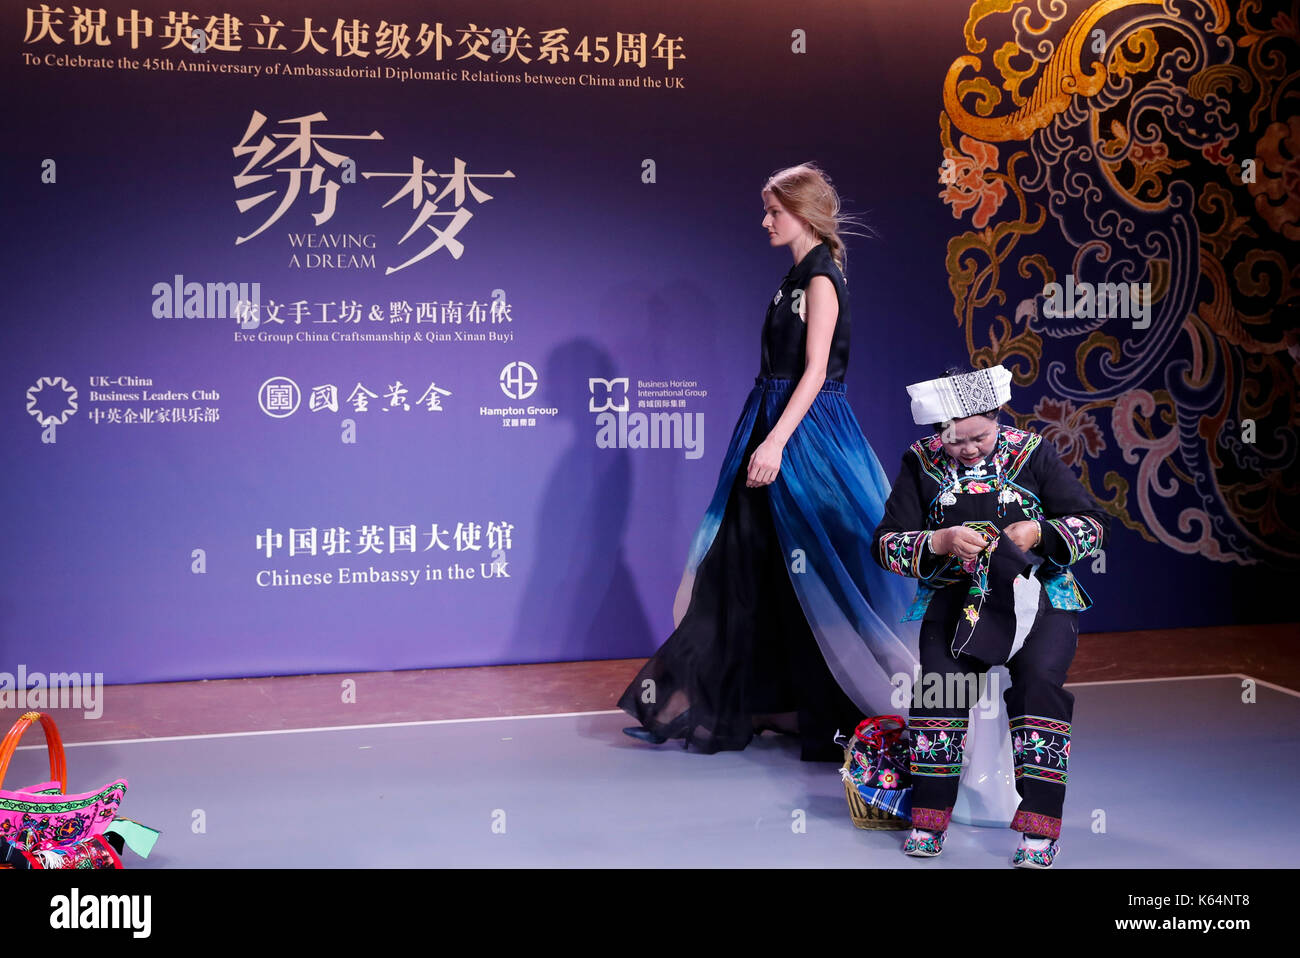 """London, UK. 11th Sep, 2017. A seamstress and a model perform during the """"weaving a dream"""" fashion show celebrating Stock Photo"""